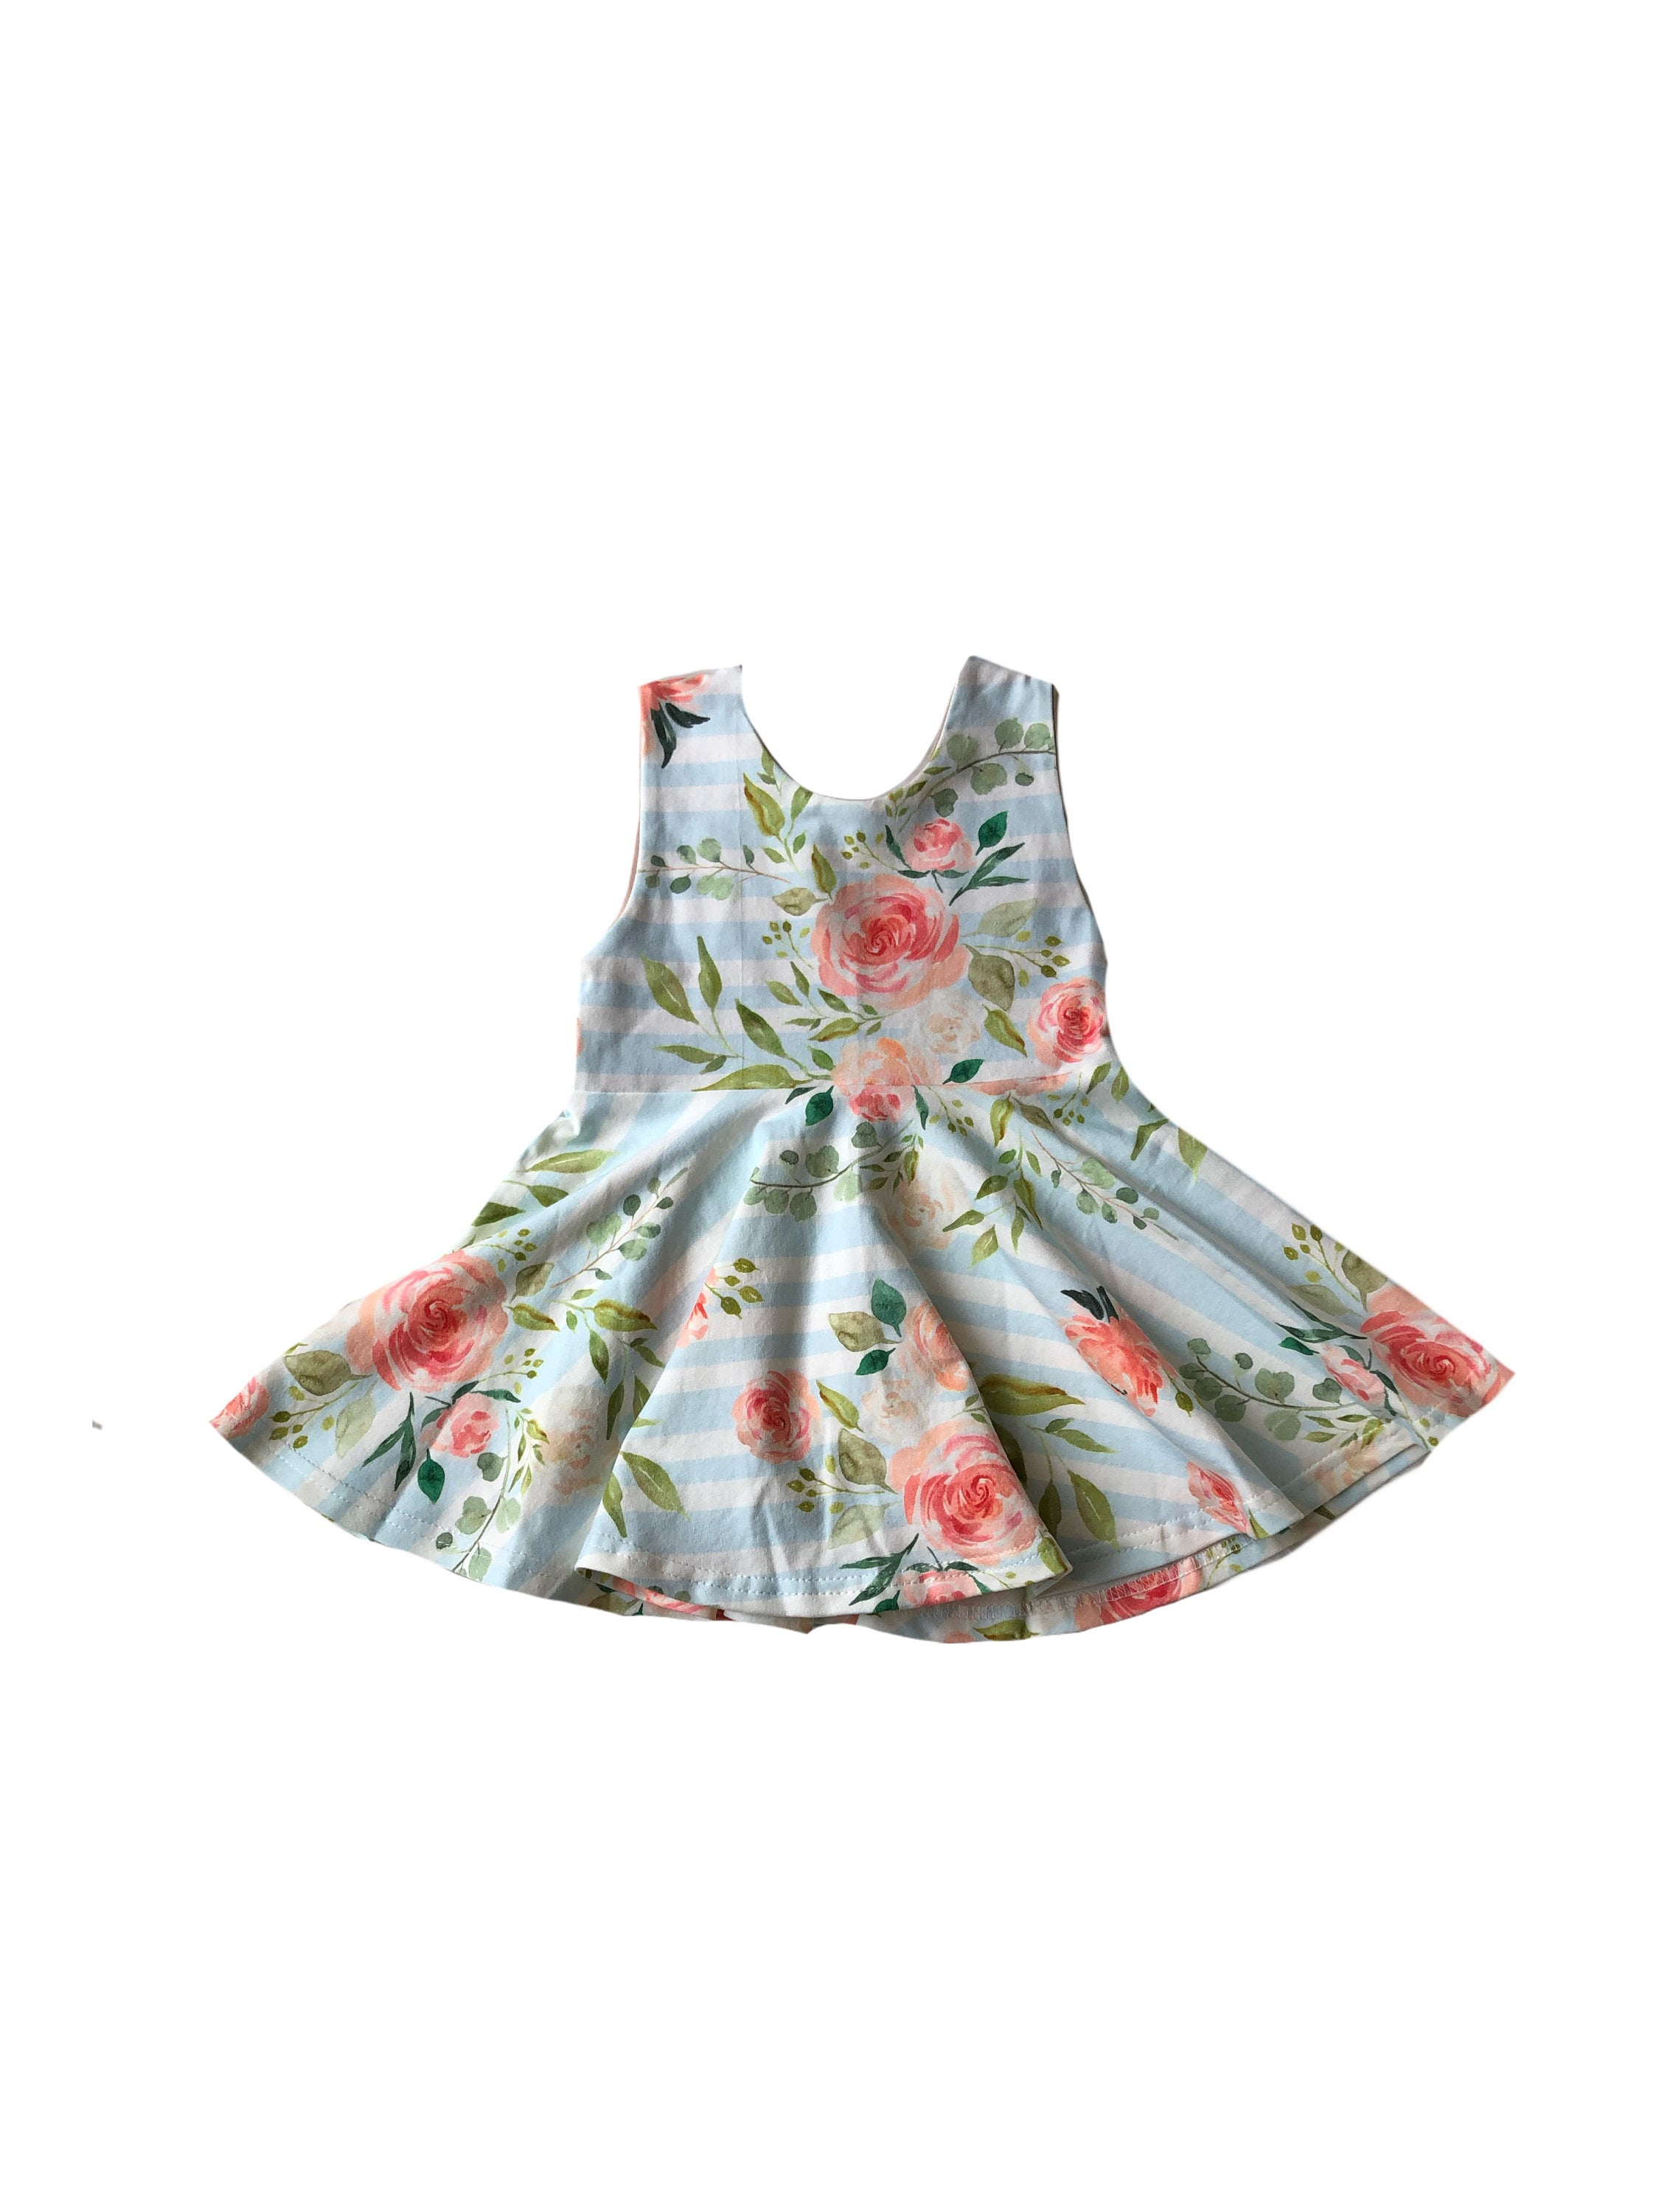 Floral Scoop Back Tank Top Peplum - Girls Spring Blue Handmade Toddler Twirl Top - Kids Fit & Flare Shirt -Sleeveless Sister Baby